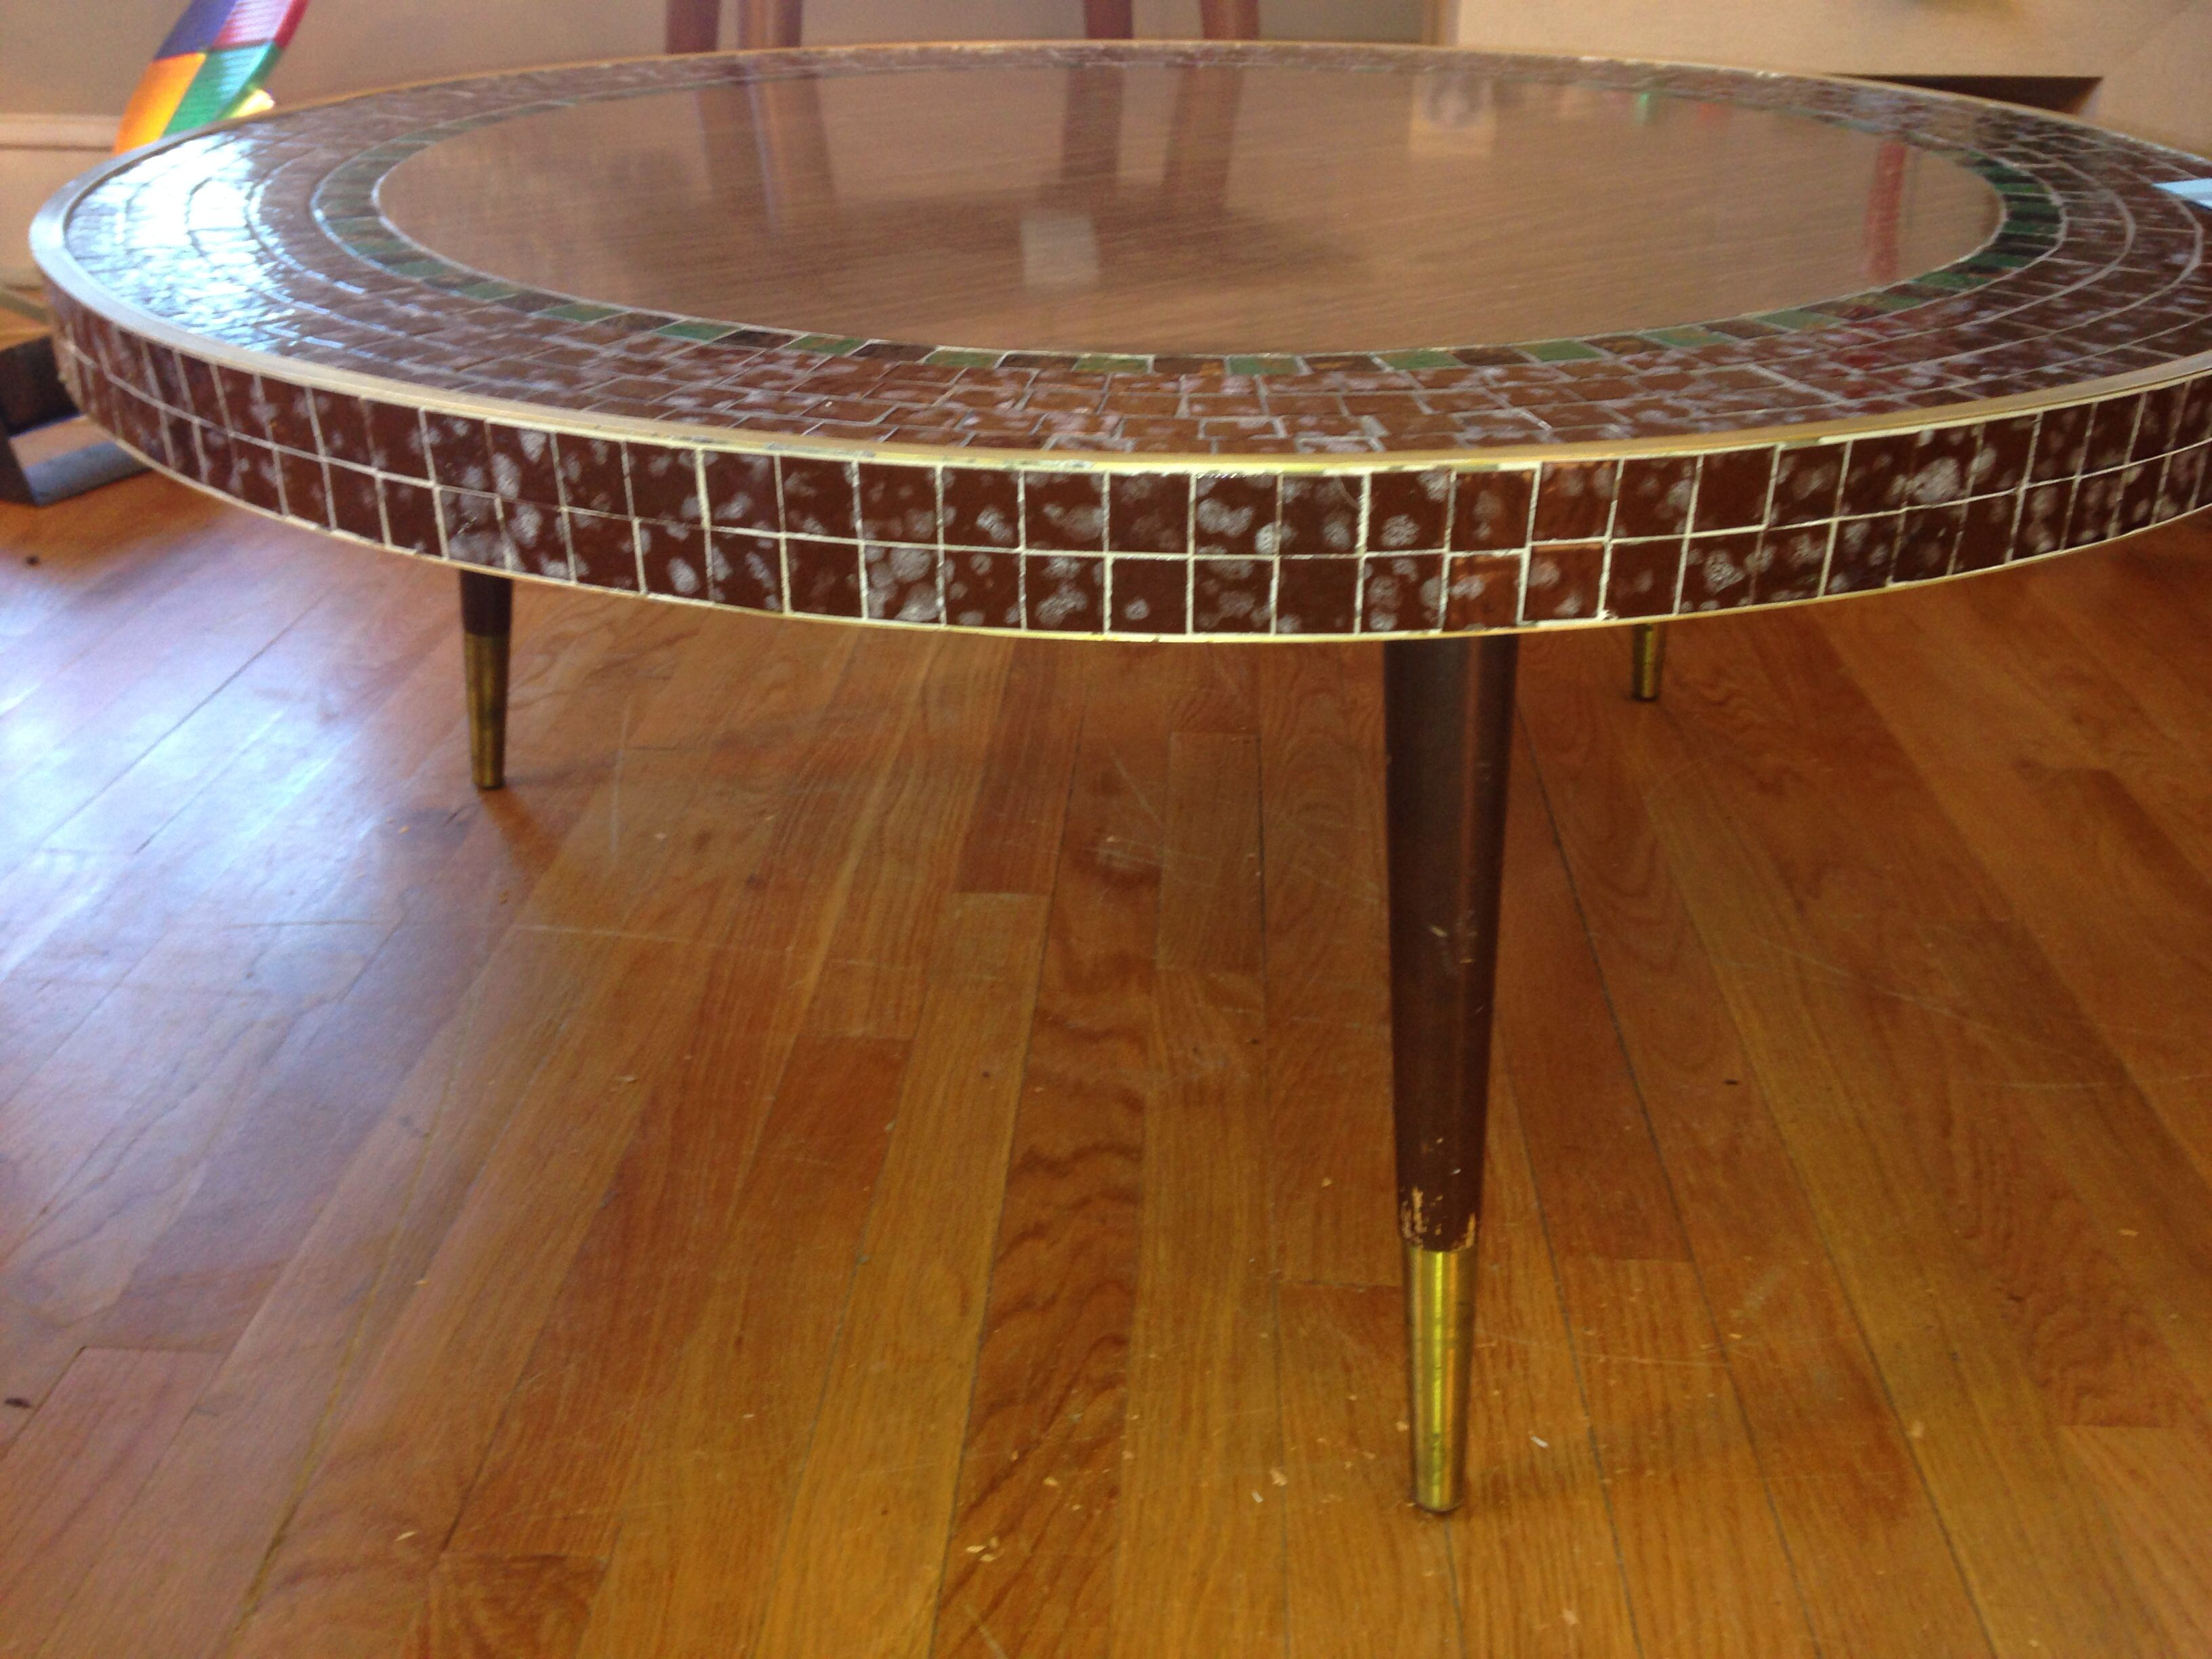 1960s Vintage Formica Round Coffee Table With Mosaic Tile Accent Sold Round Coffee Table 1960s Vintage Mosaic Tiles [ 2448 x 3264 Pixel ]